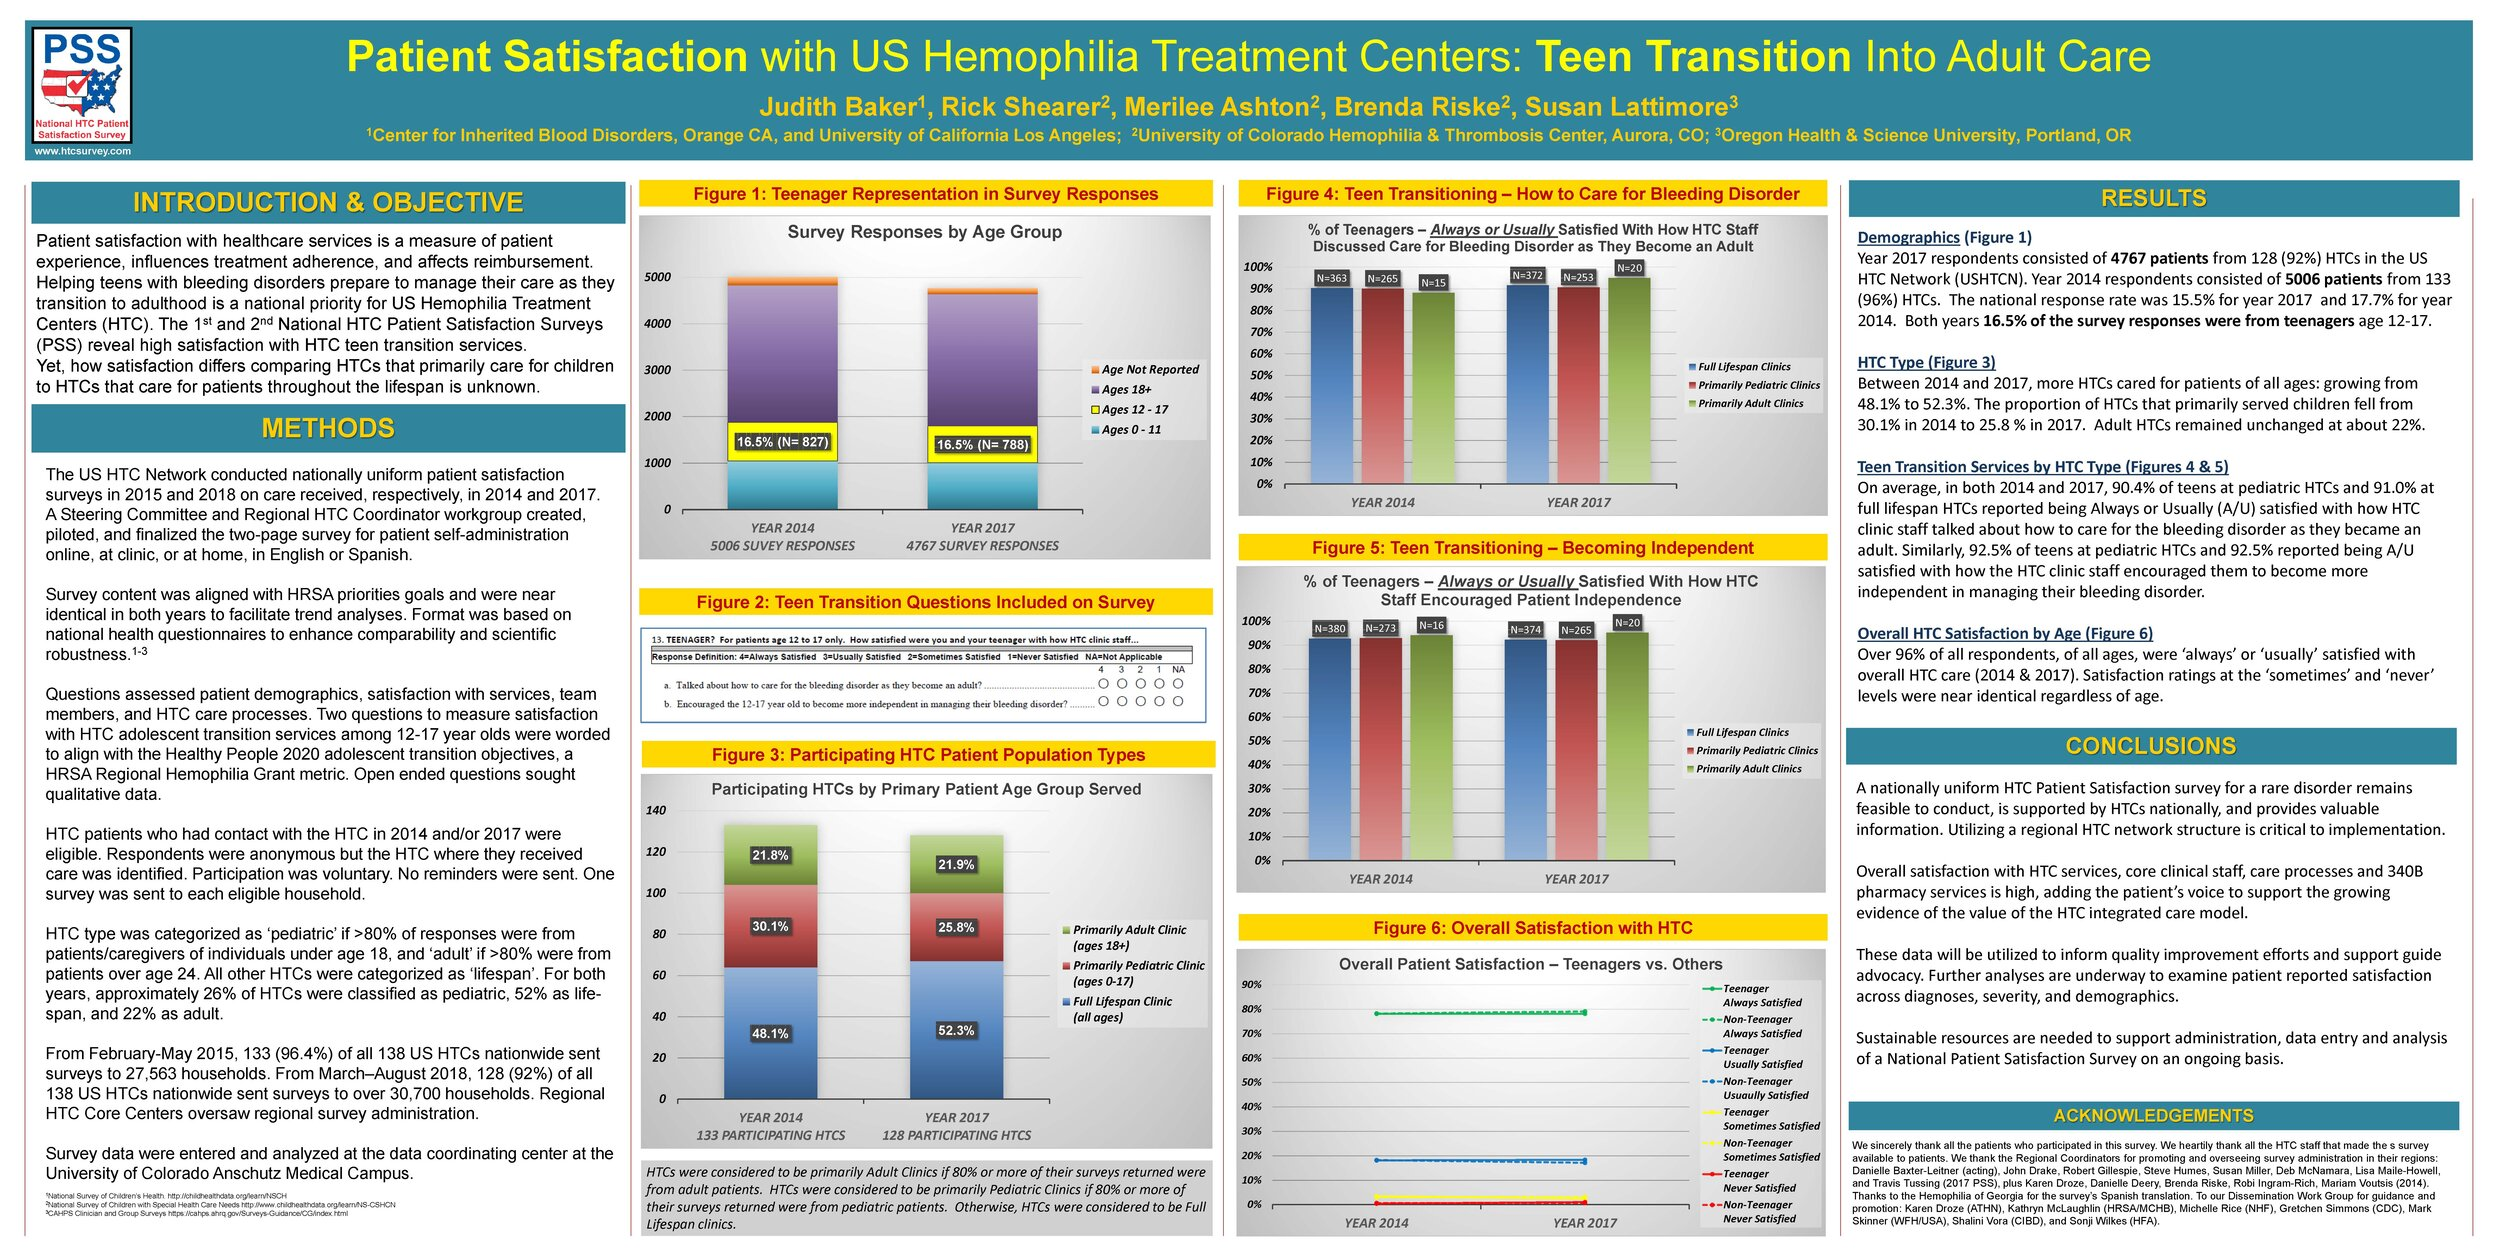 This poster was presented at the National Hemophilia Foundation's Bleeding Disorder Convention in Anaheim, CA. and at the ATHN Data Summit in Chicago, IL, both in October 2019.